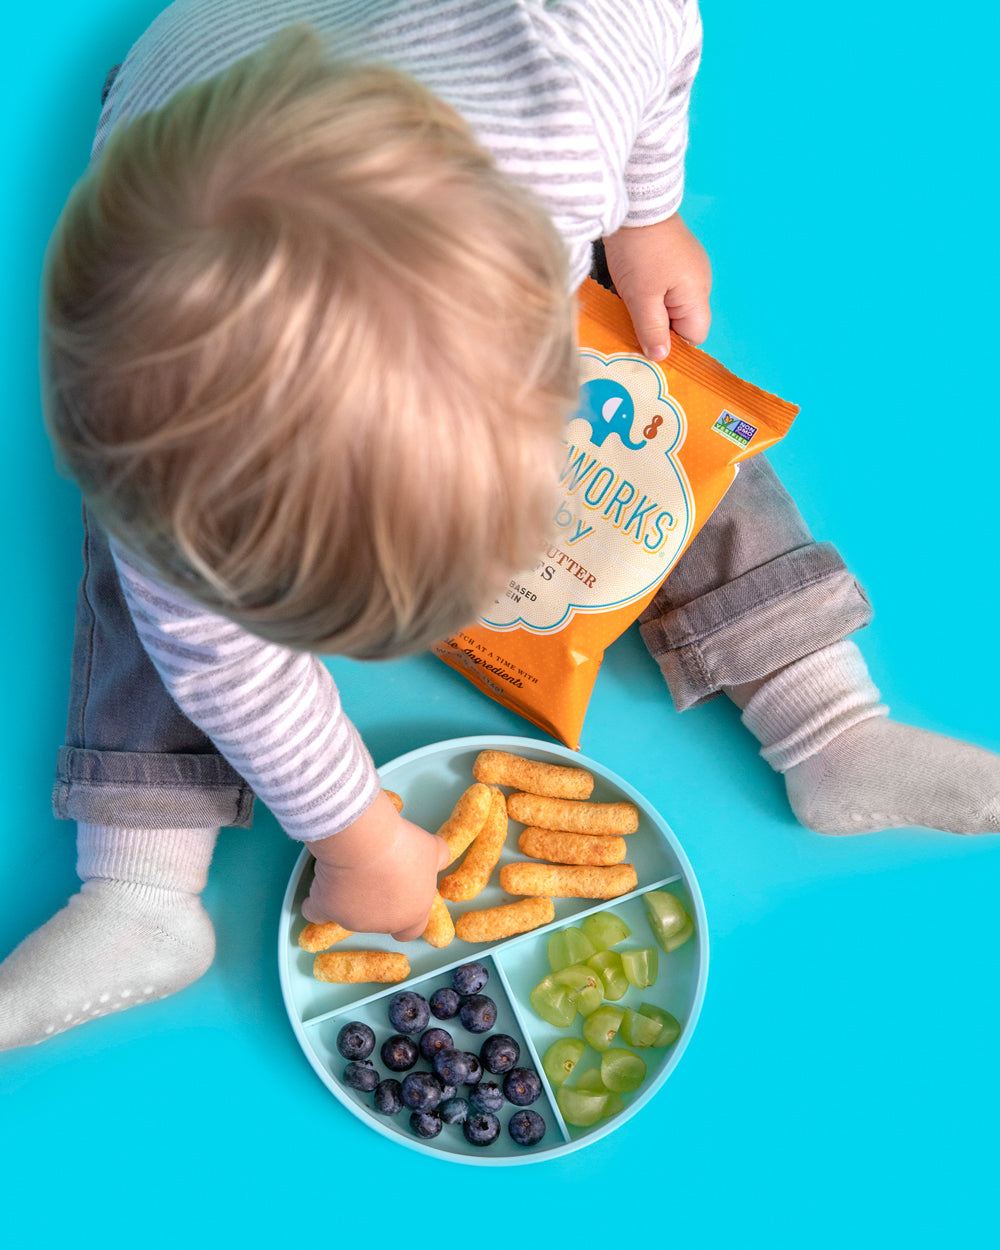 Baby enjoying Puffworks Baby Peanut Butter Puffs